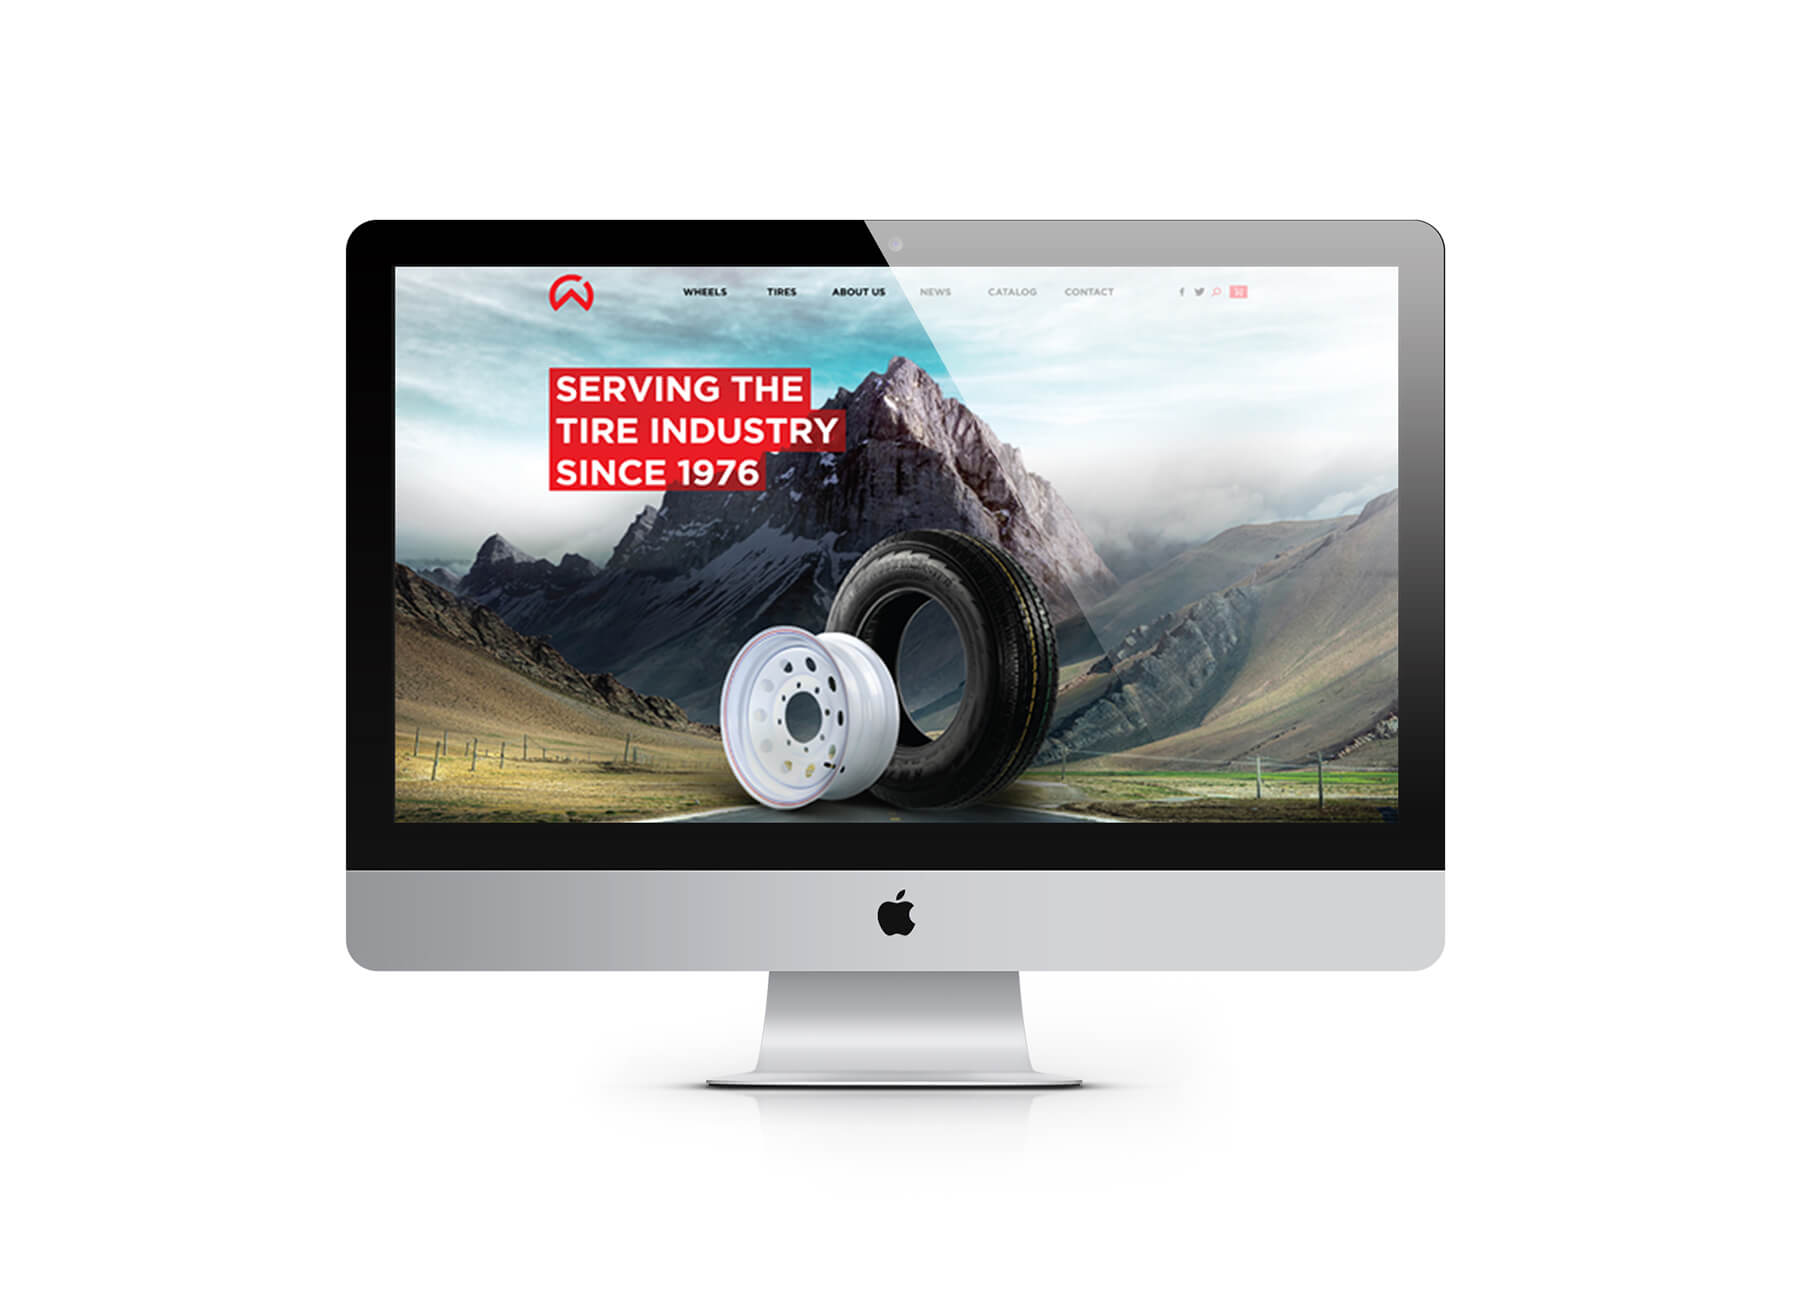 CW-Website-iMac